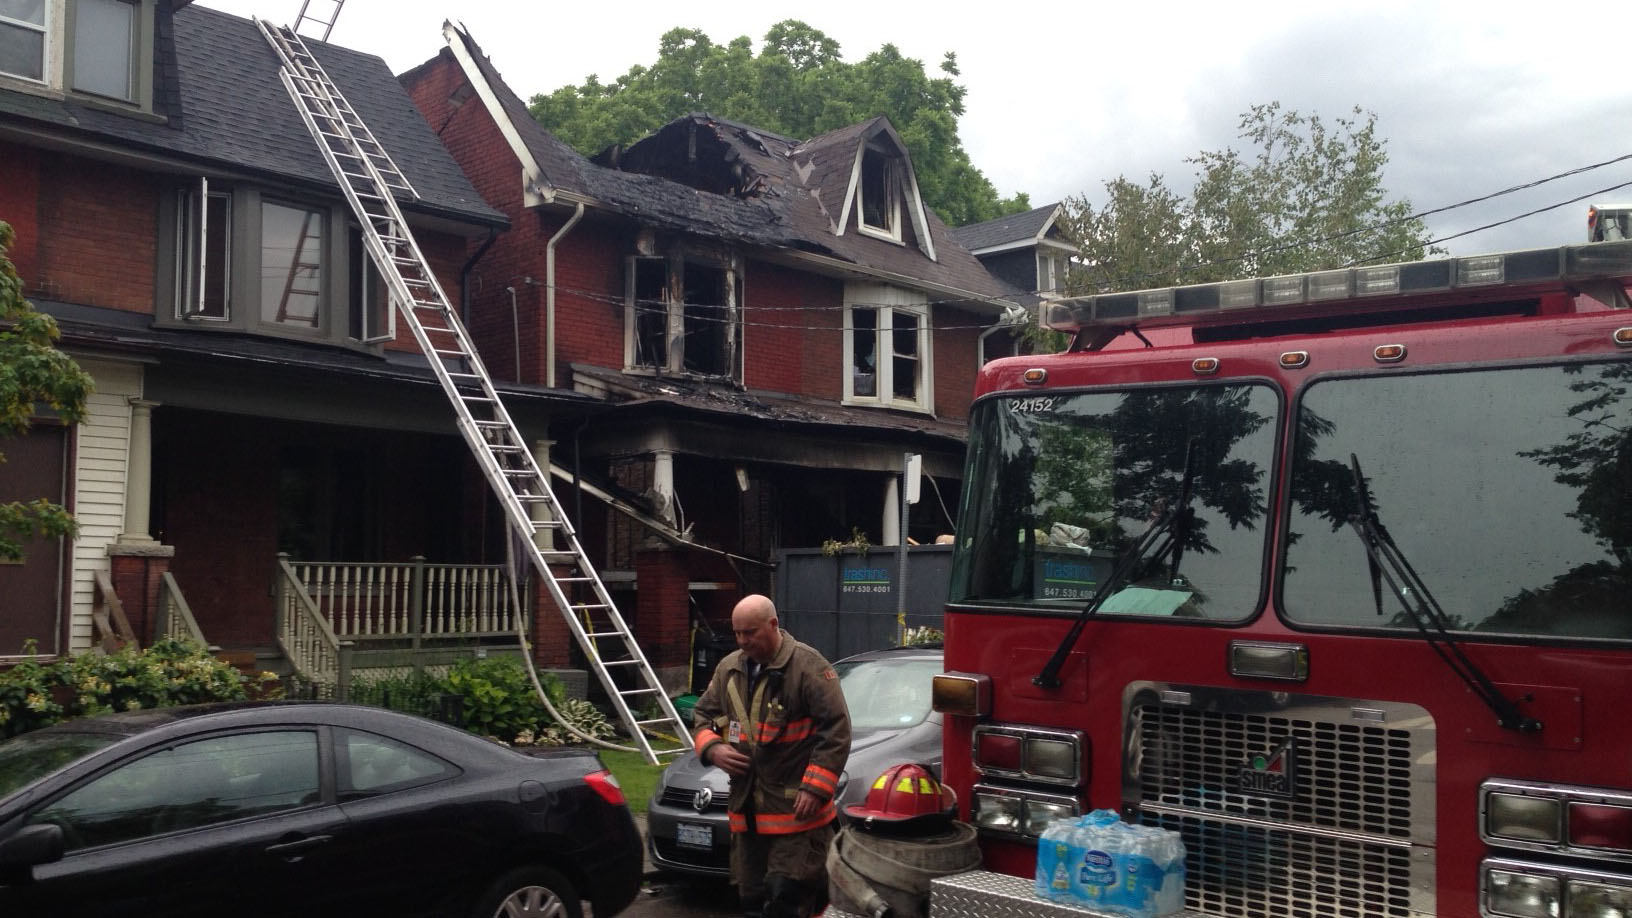 A fire broke out in a home that was under renovation on Booth Avenue on June 27, 2017. CITYNEWS/Bertram Dandy